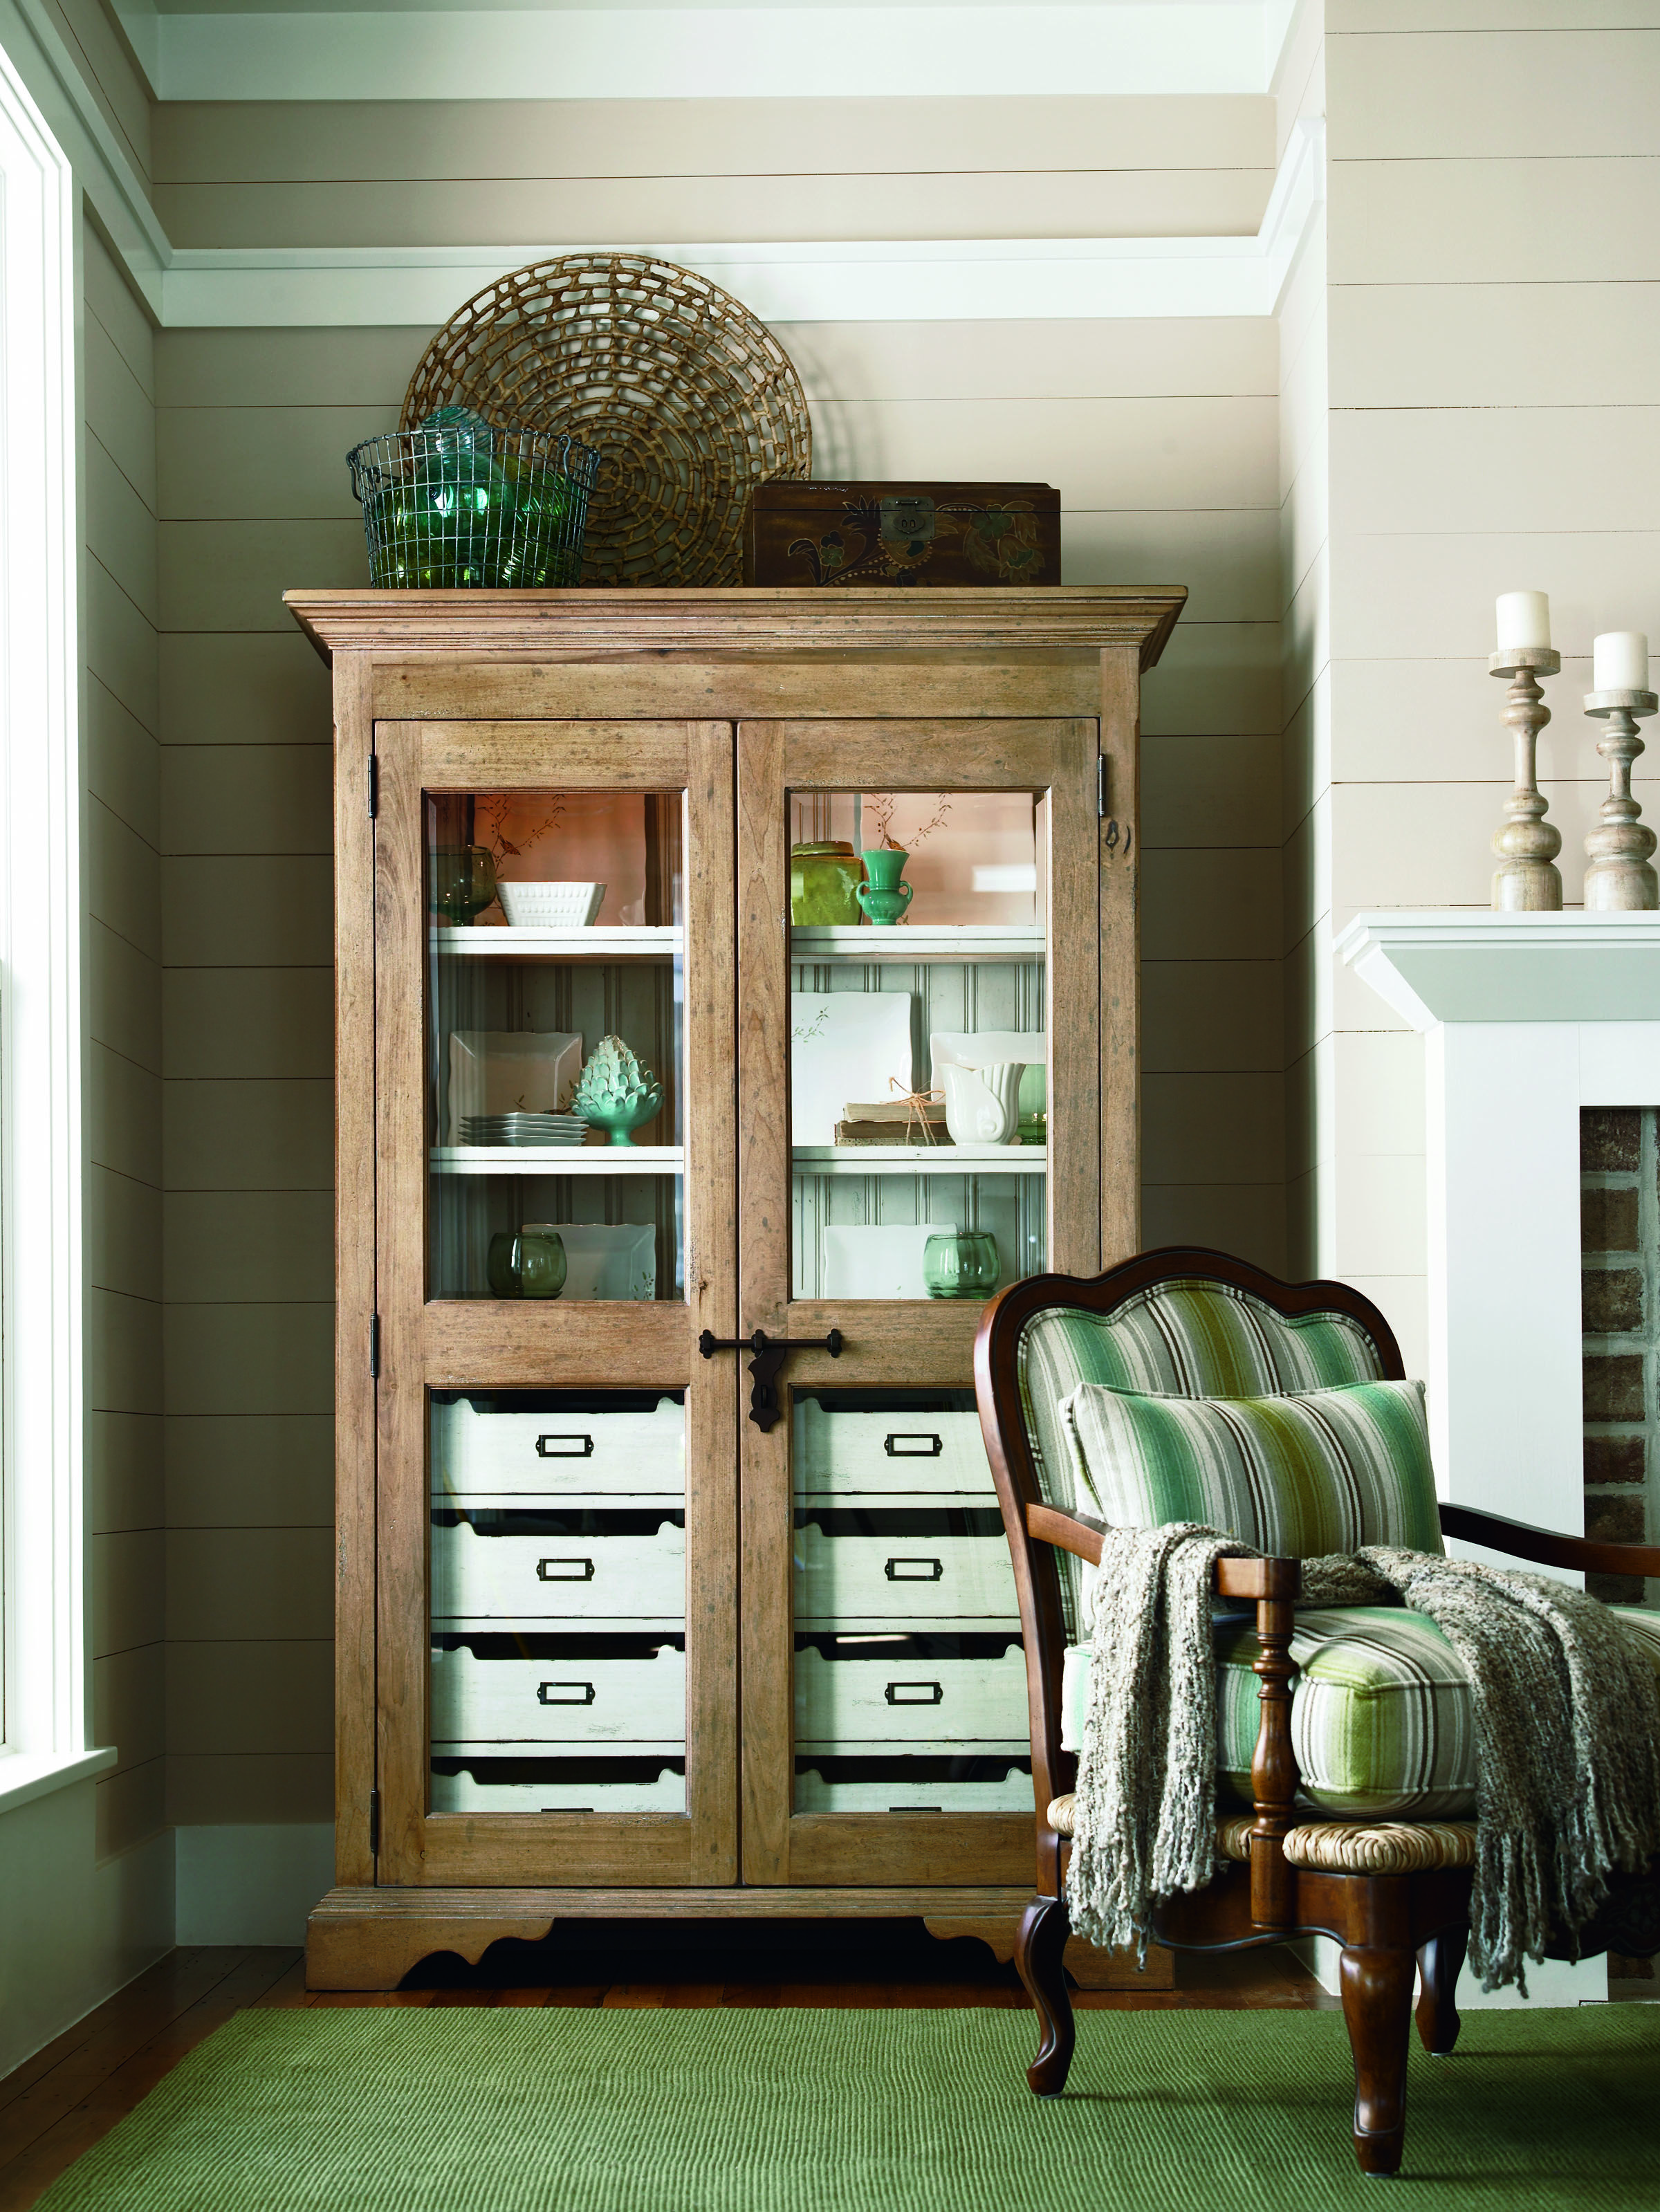 End of hallway storage ideas  Paula Deen Dish Pantry by Universal Furniture  Casual Dining Room